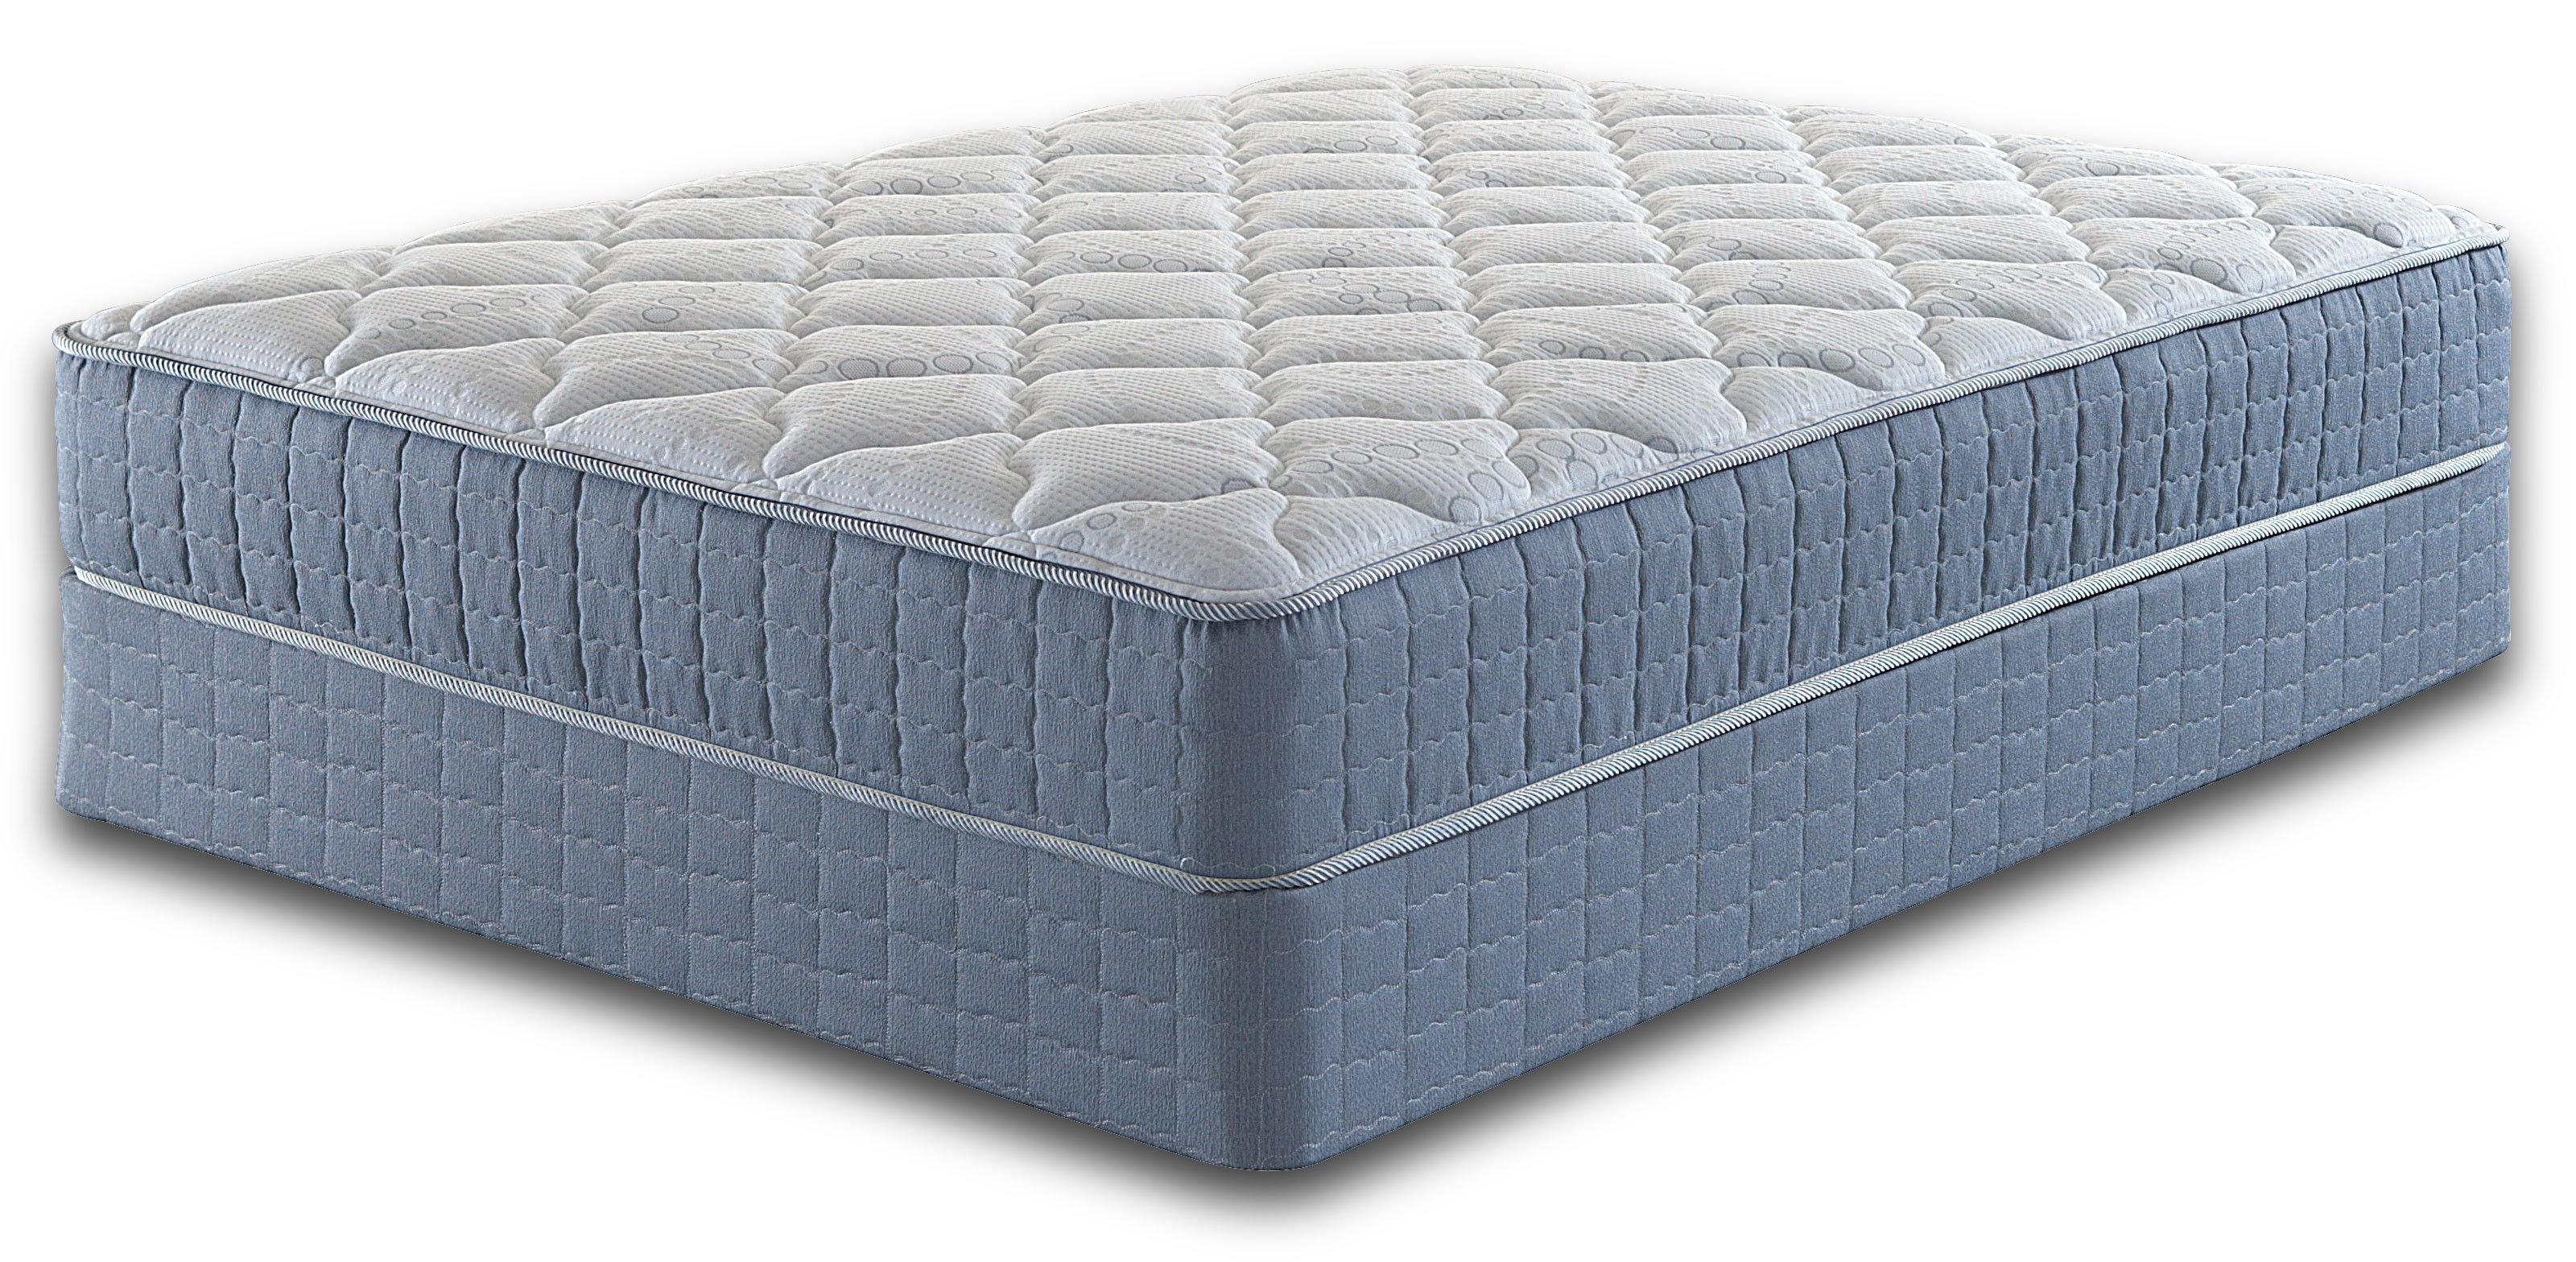 size glory collection berkshire corner iseries king morning pocketcoil outlet view with mattress latex worldwide archives